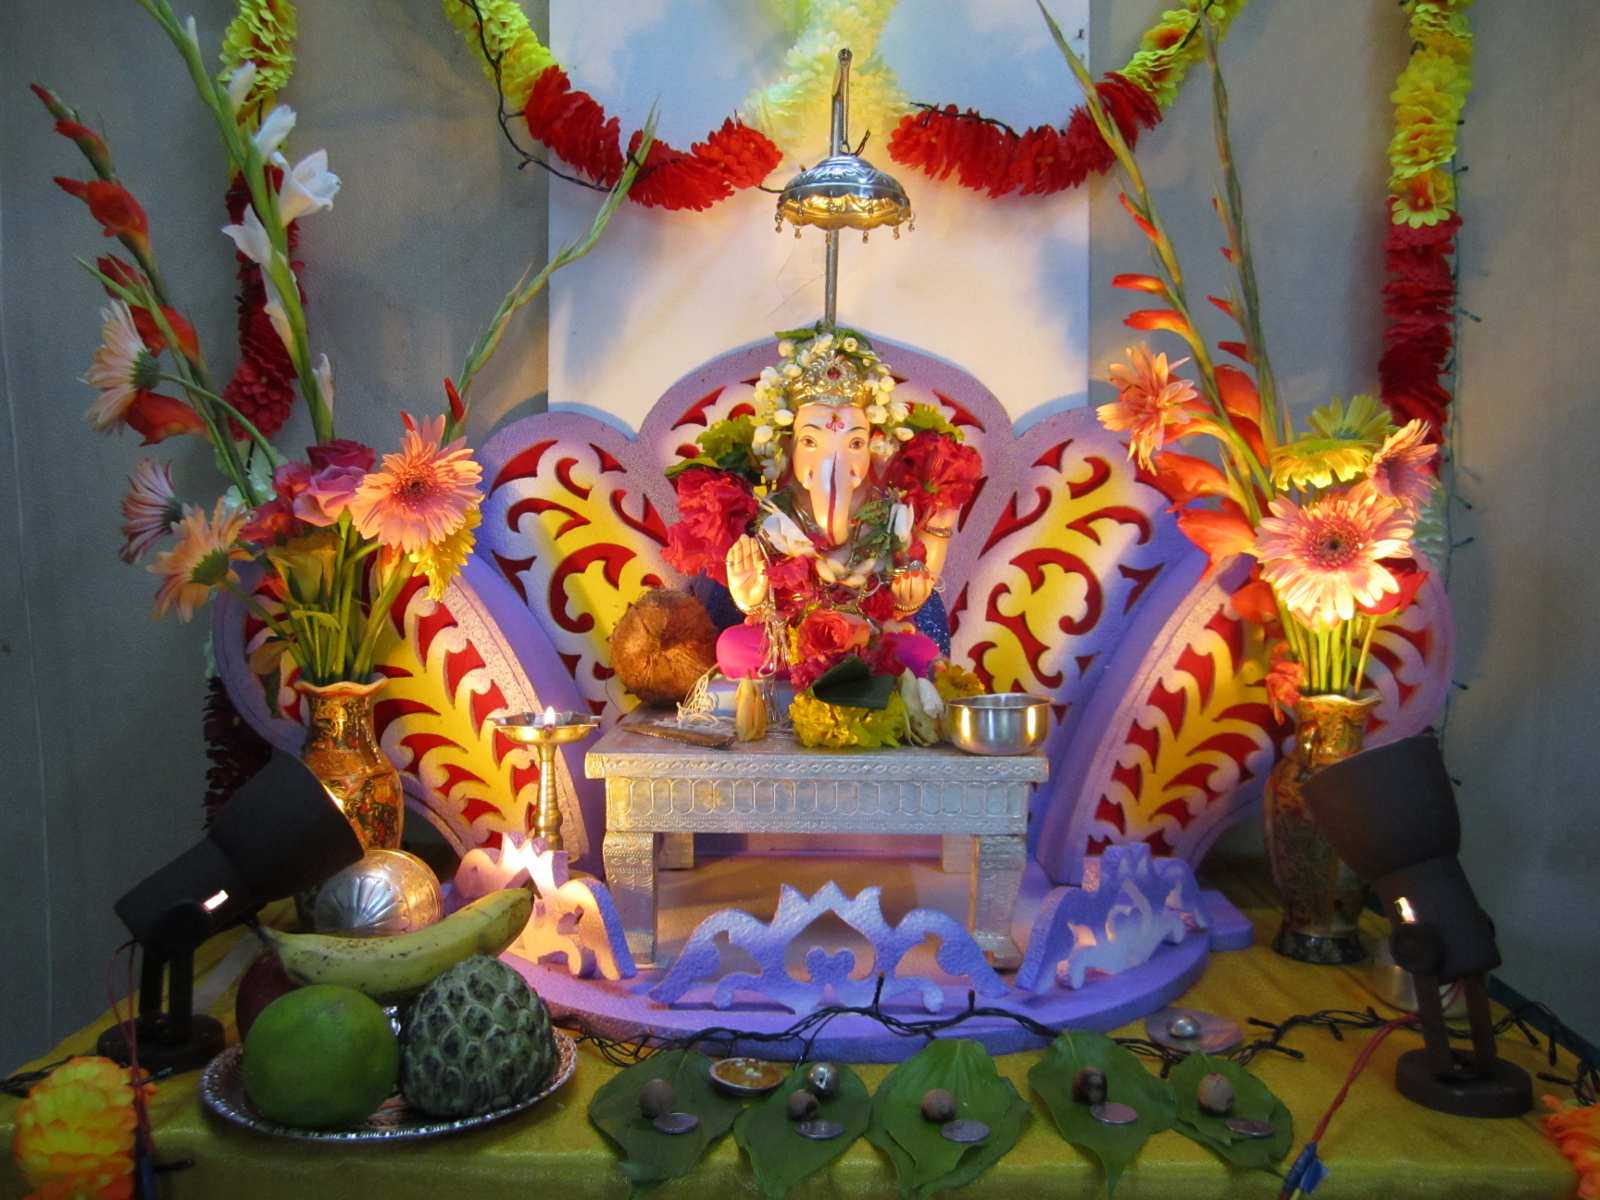 Amazing Ganesha Decoration Ideas For Ganesh Chaturthi Festival With Images Ganesh Chaturthi